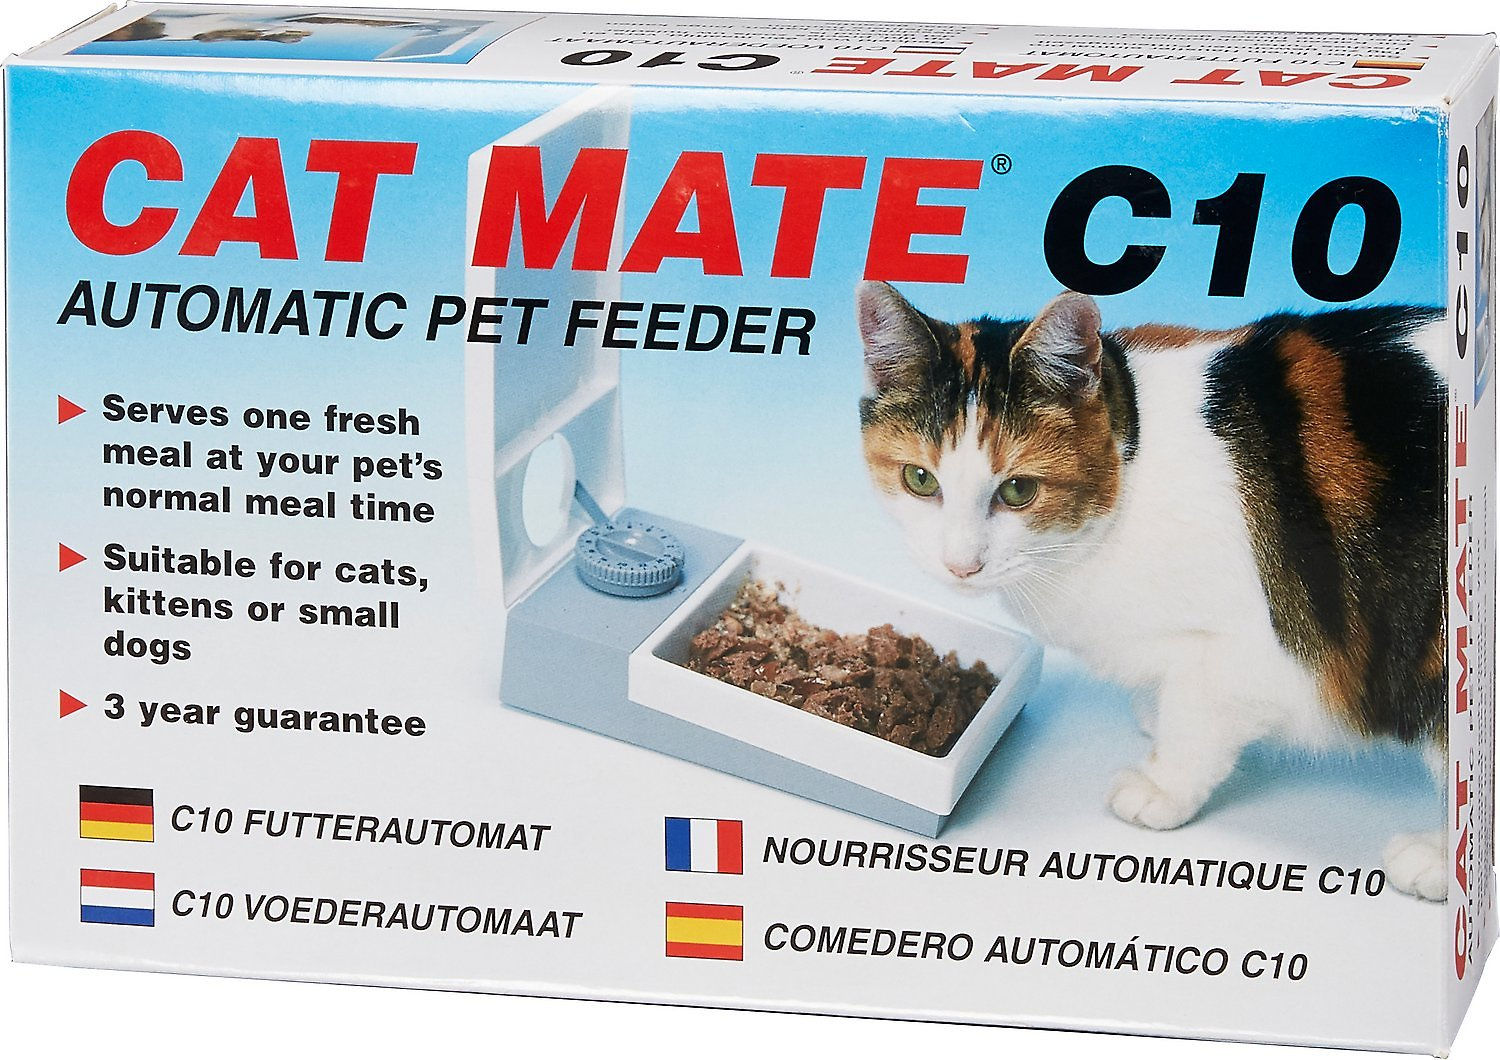 Cat Mate C Automatic Pet Feeder Instructions